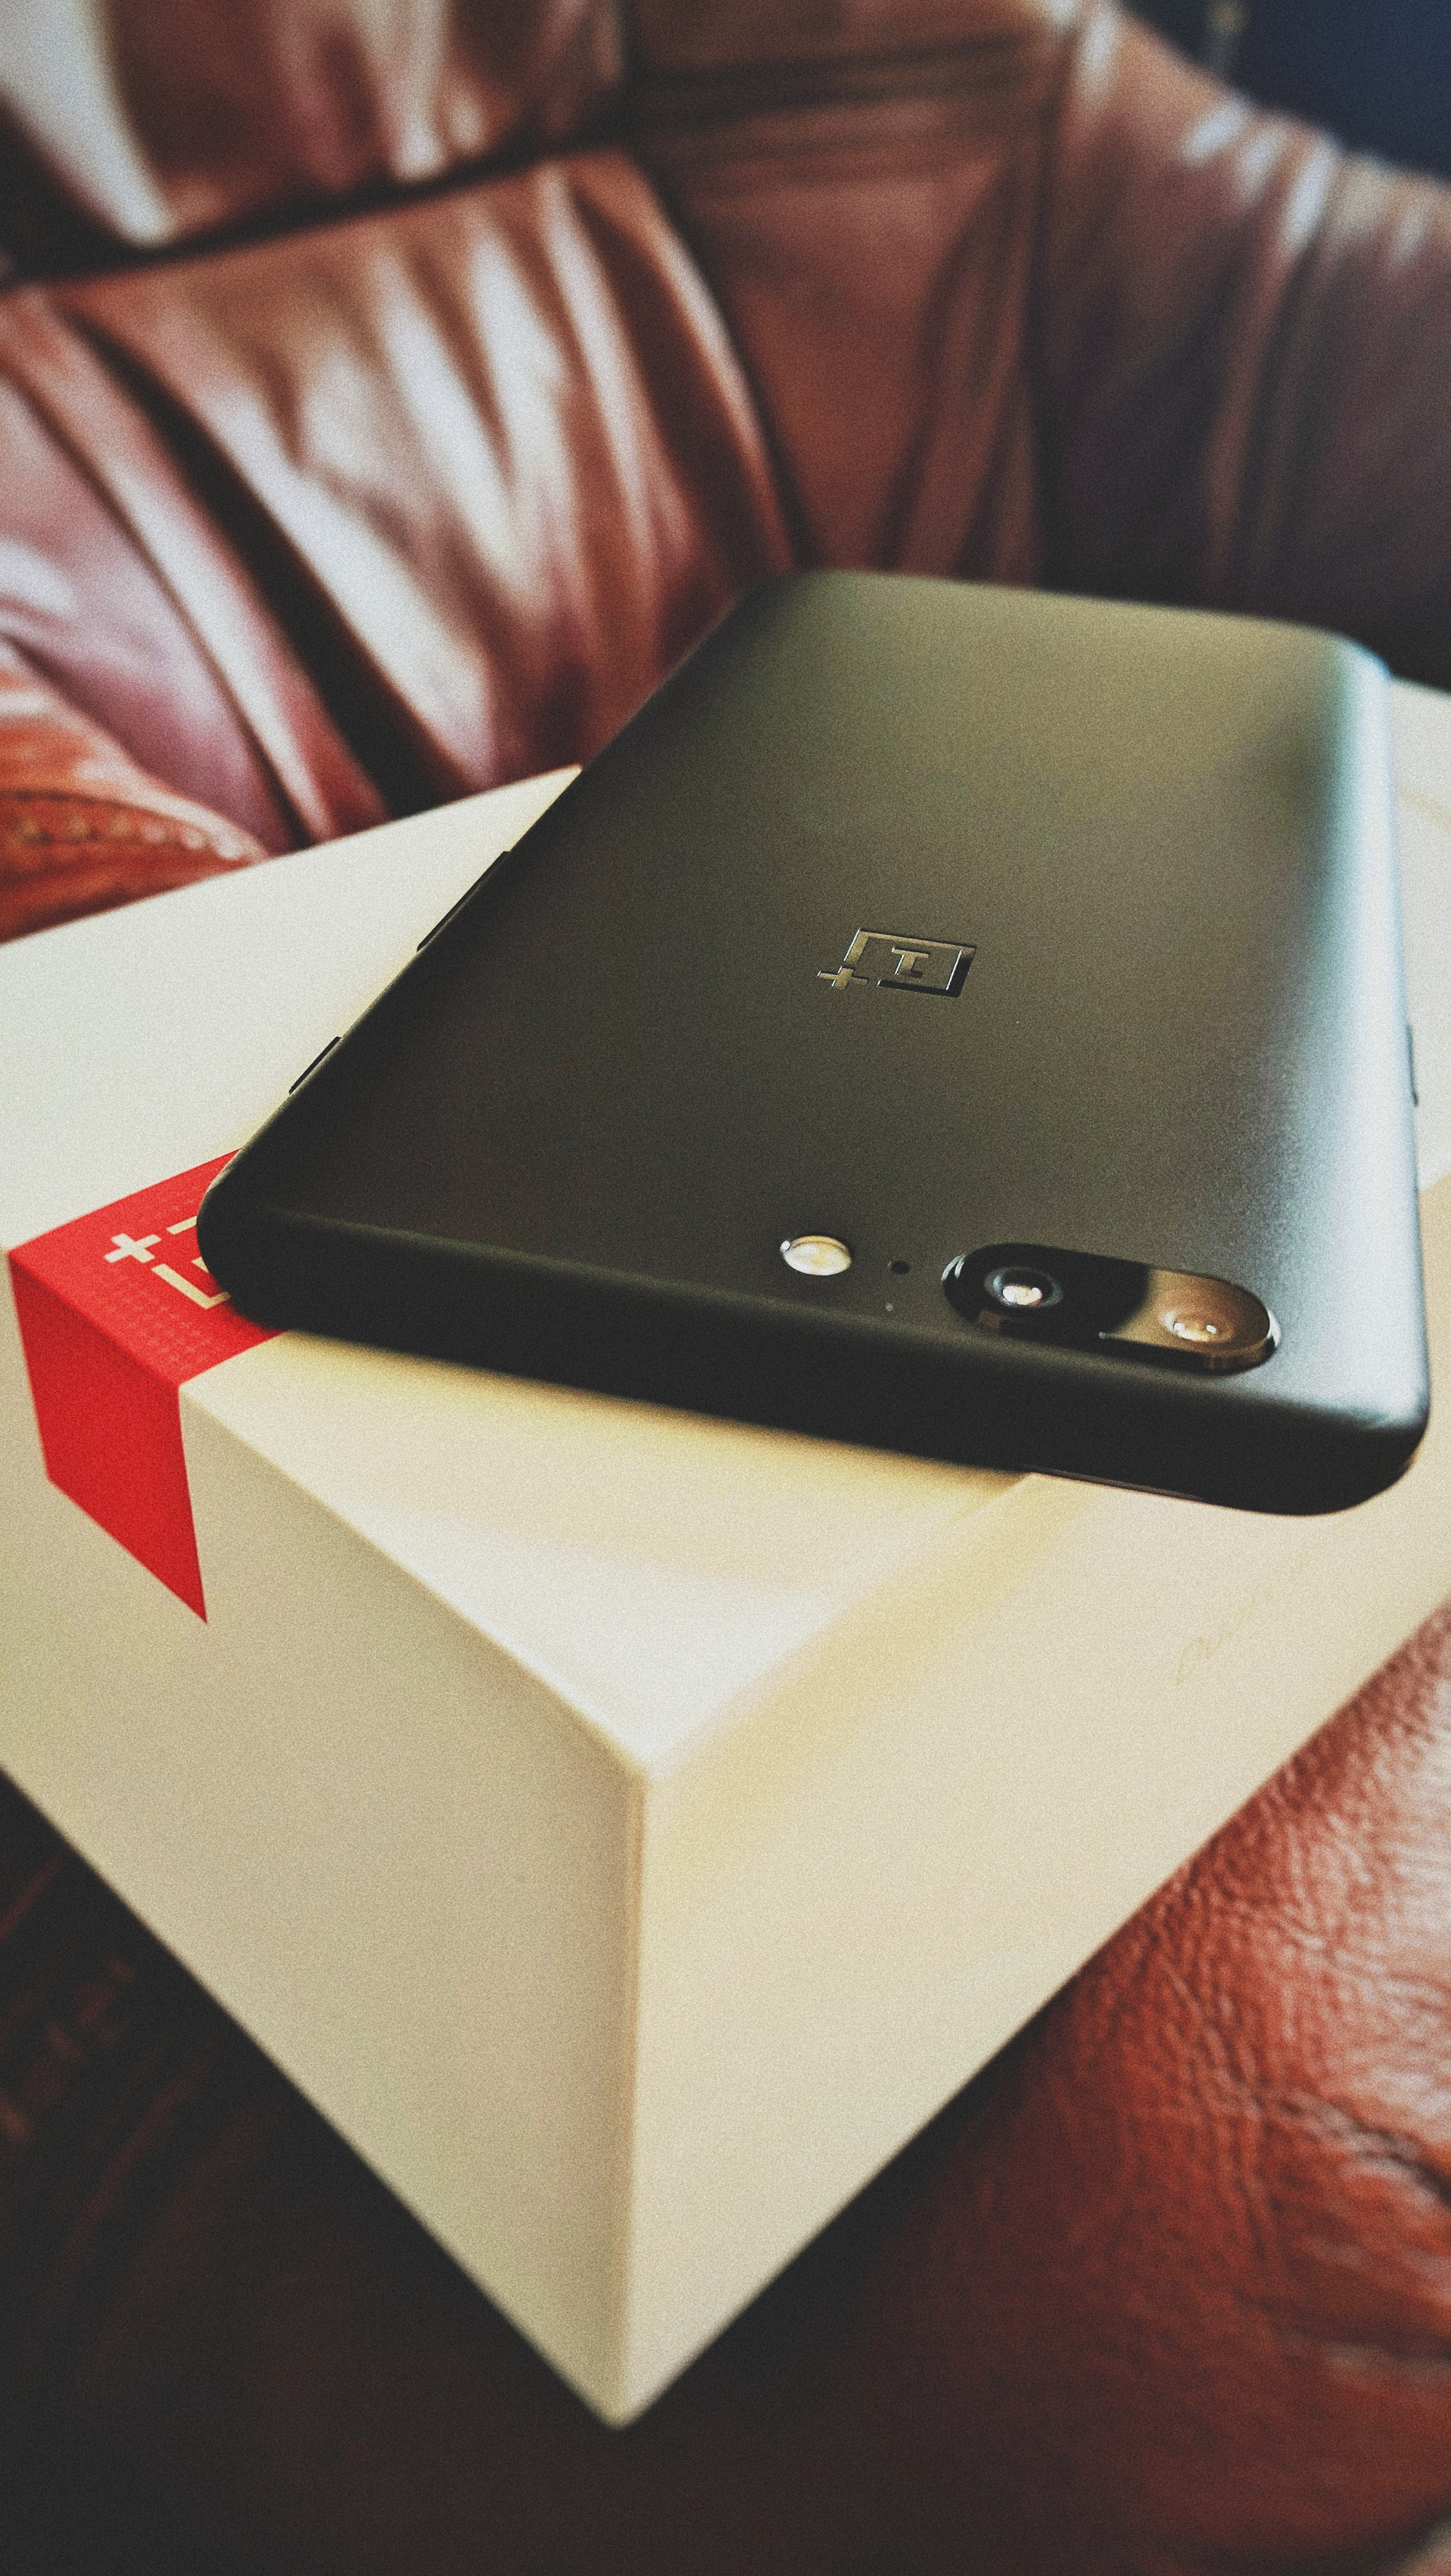 A black smartphone out of its box.